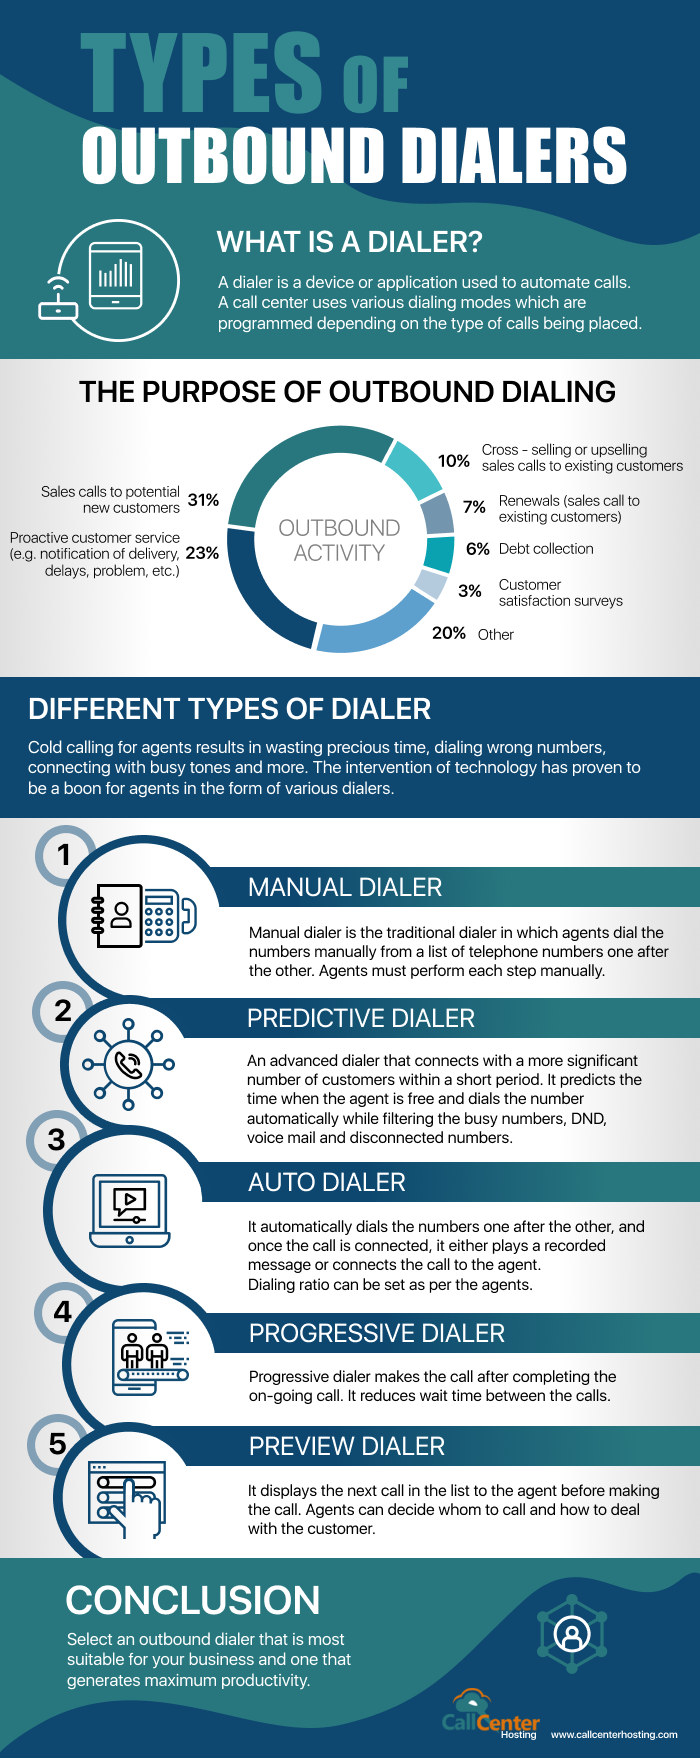 types-outbound-dialers